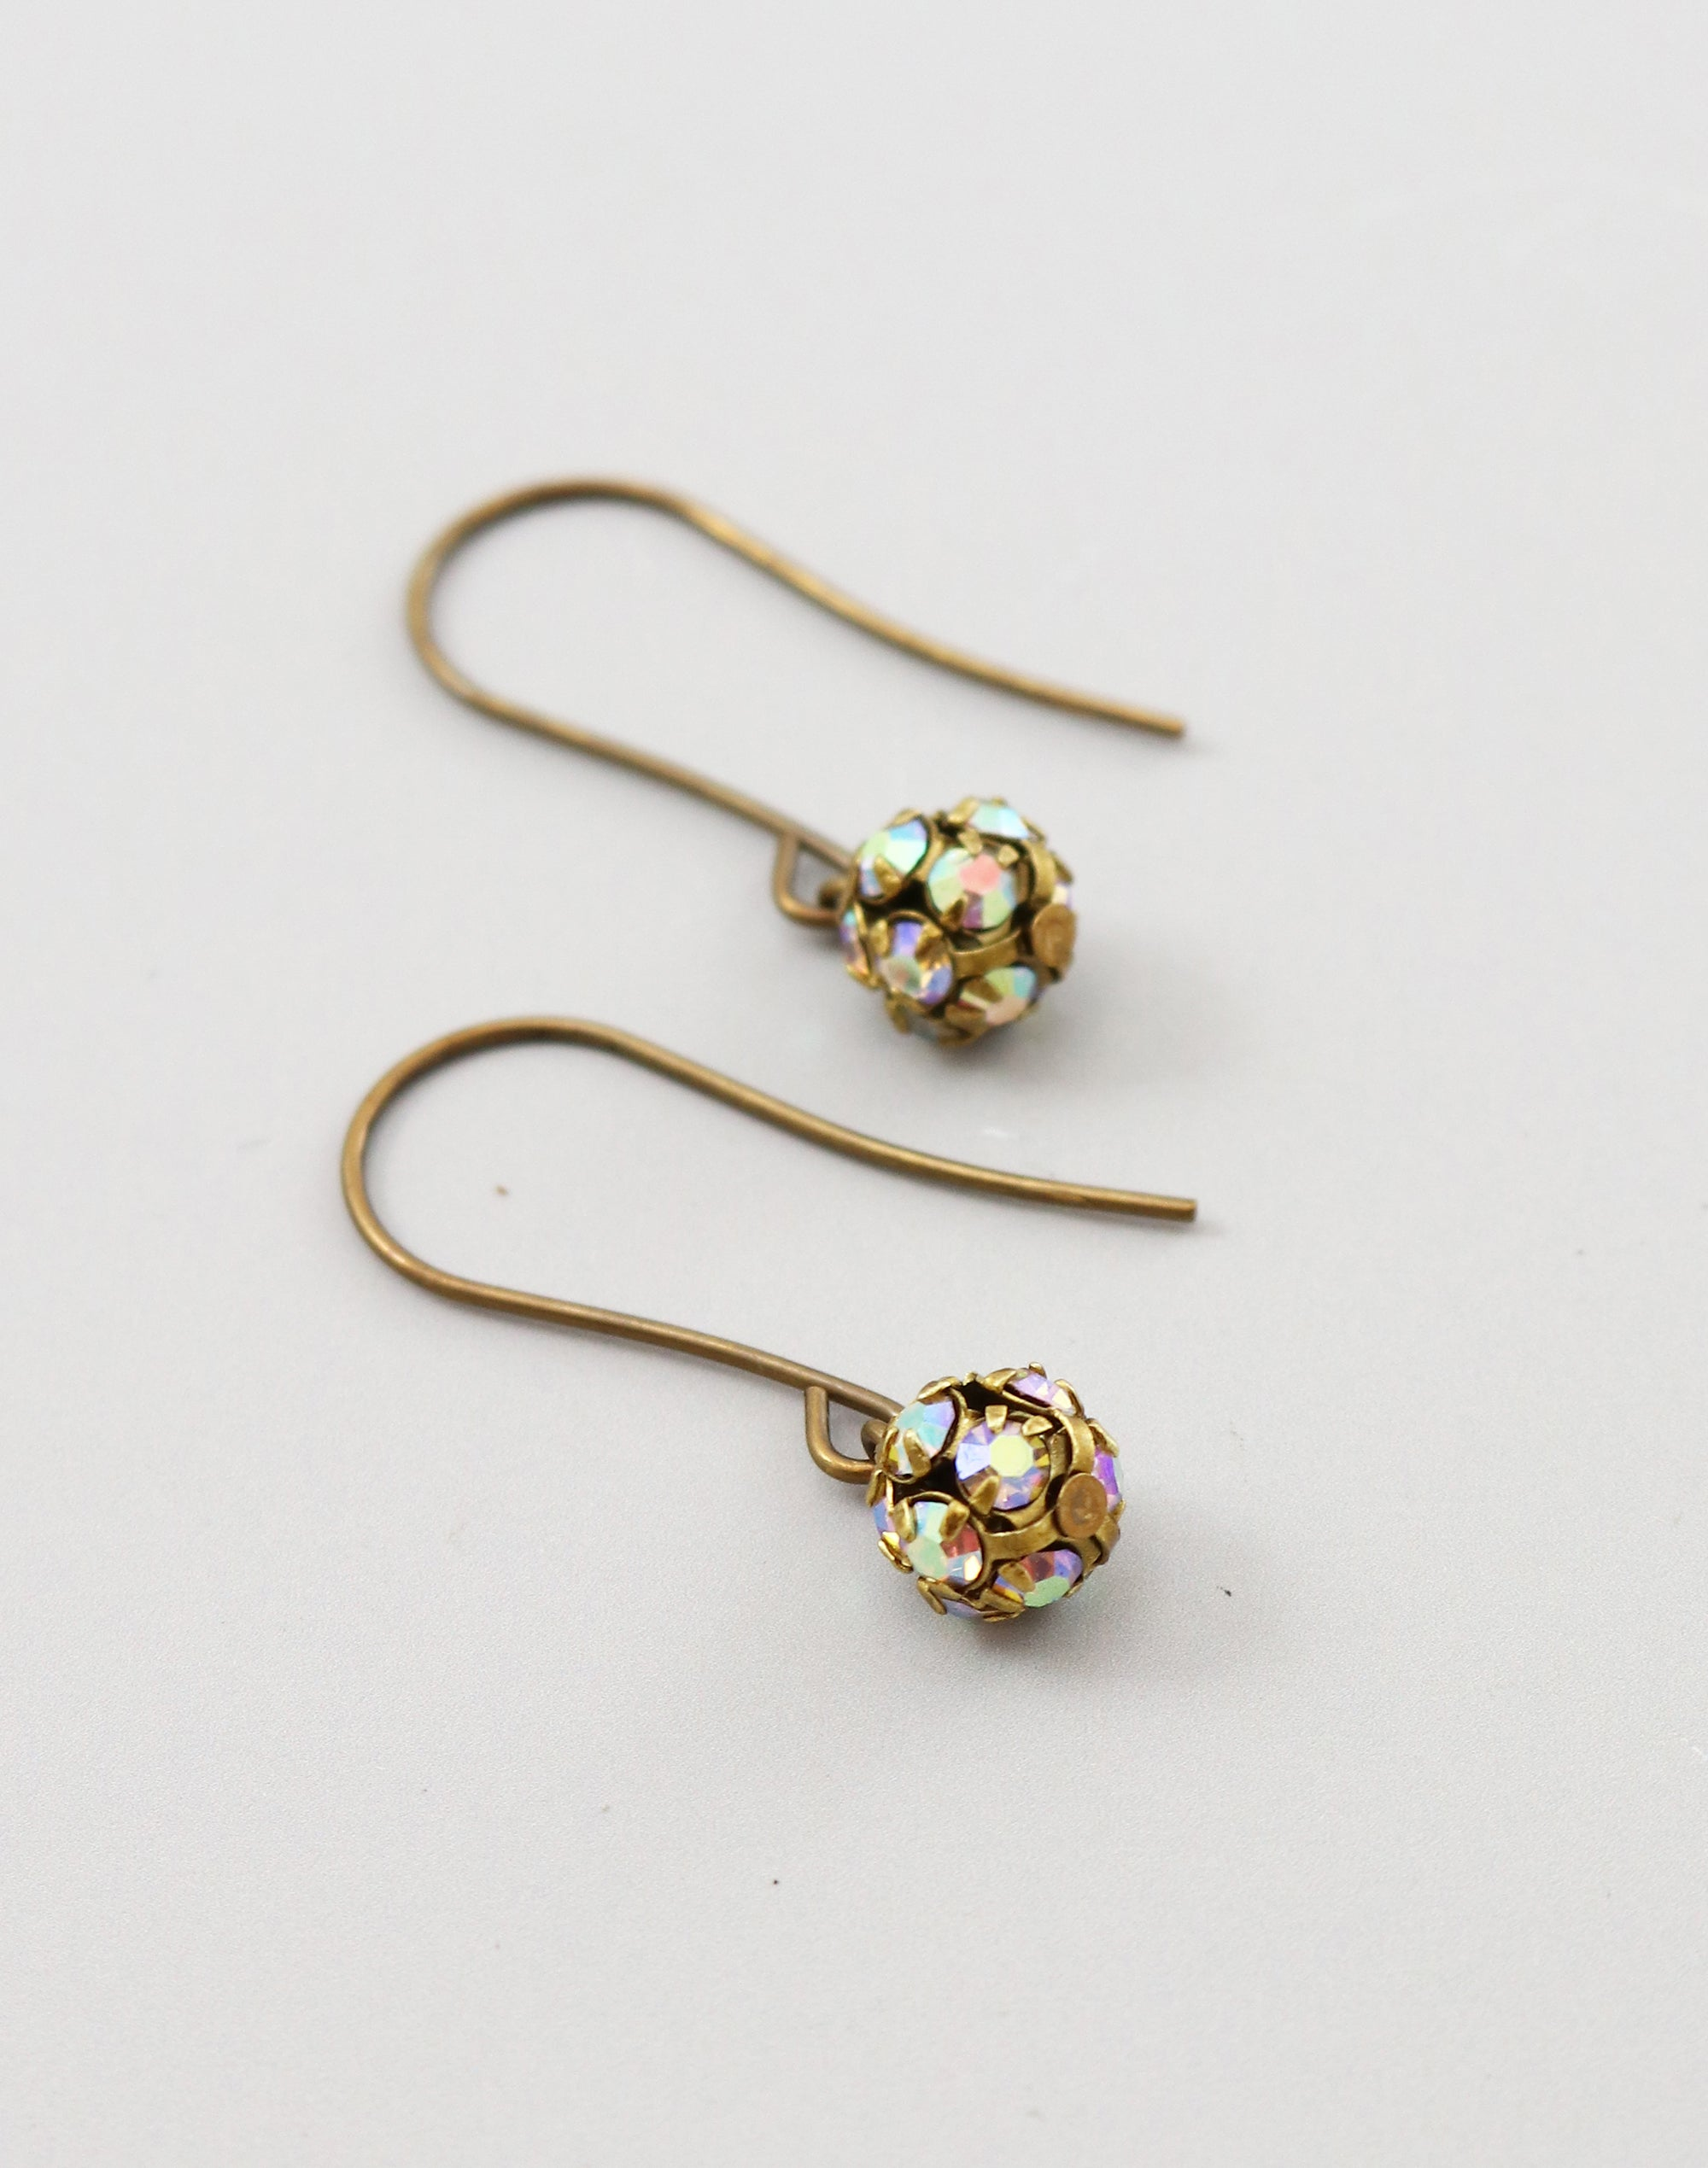 Gypsy Ball Earrings, (1 pair)